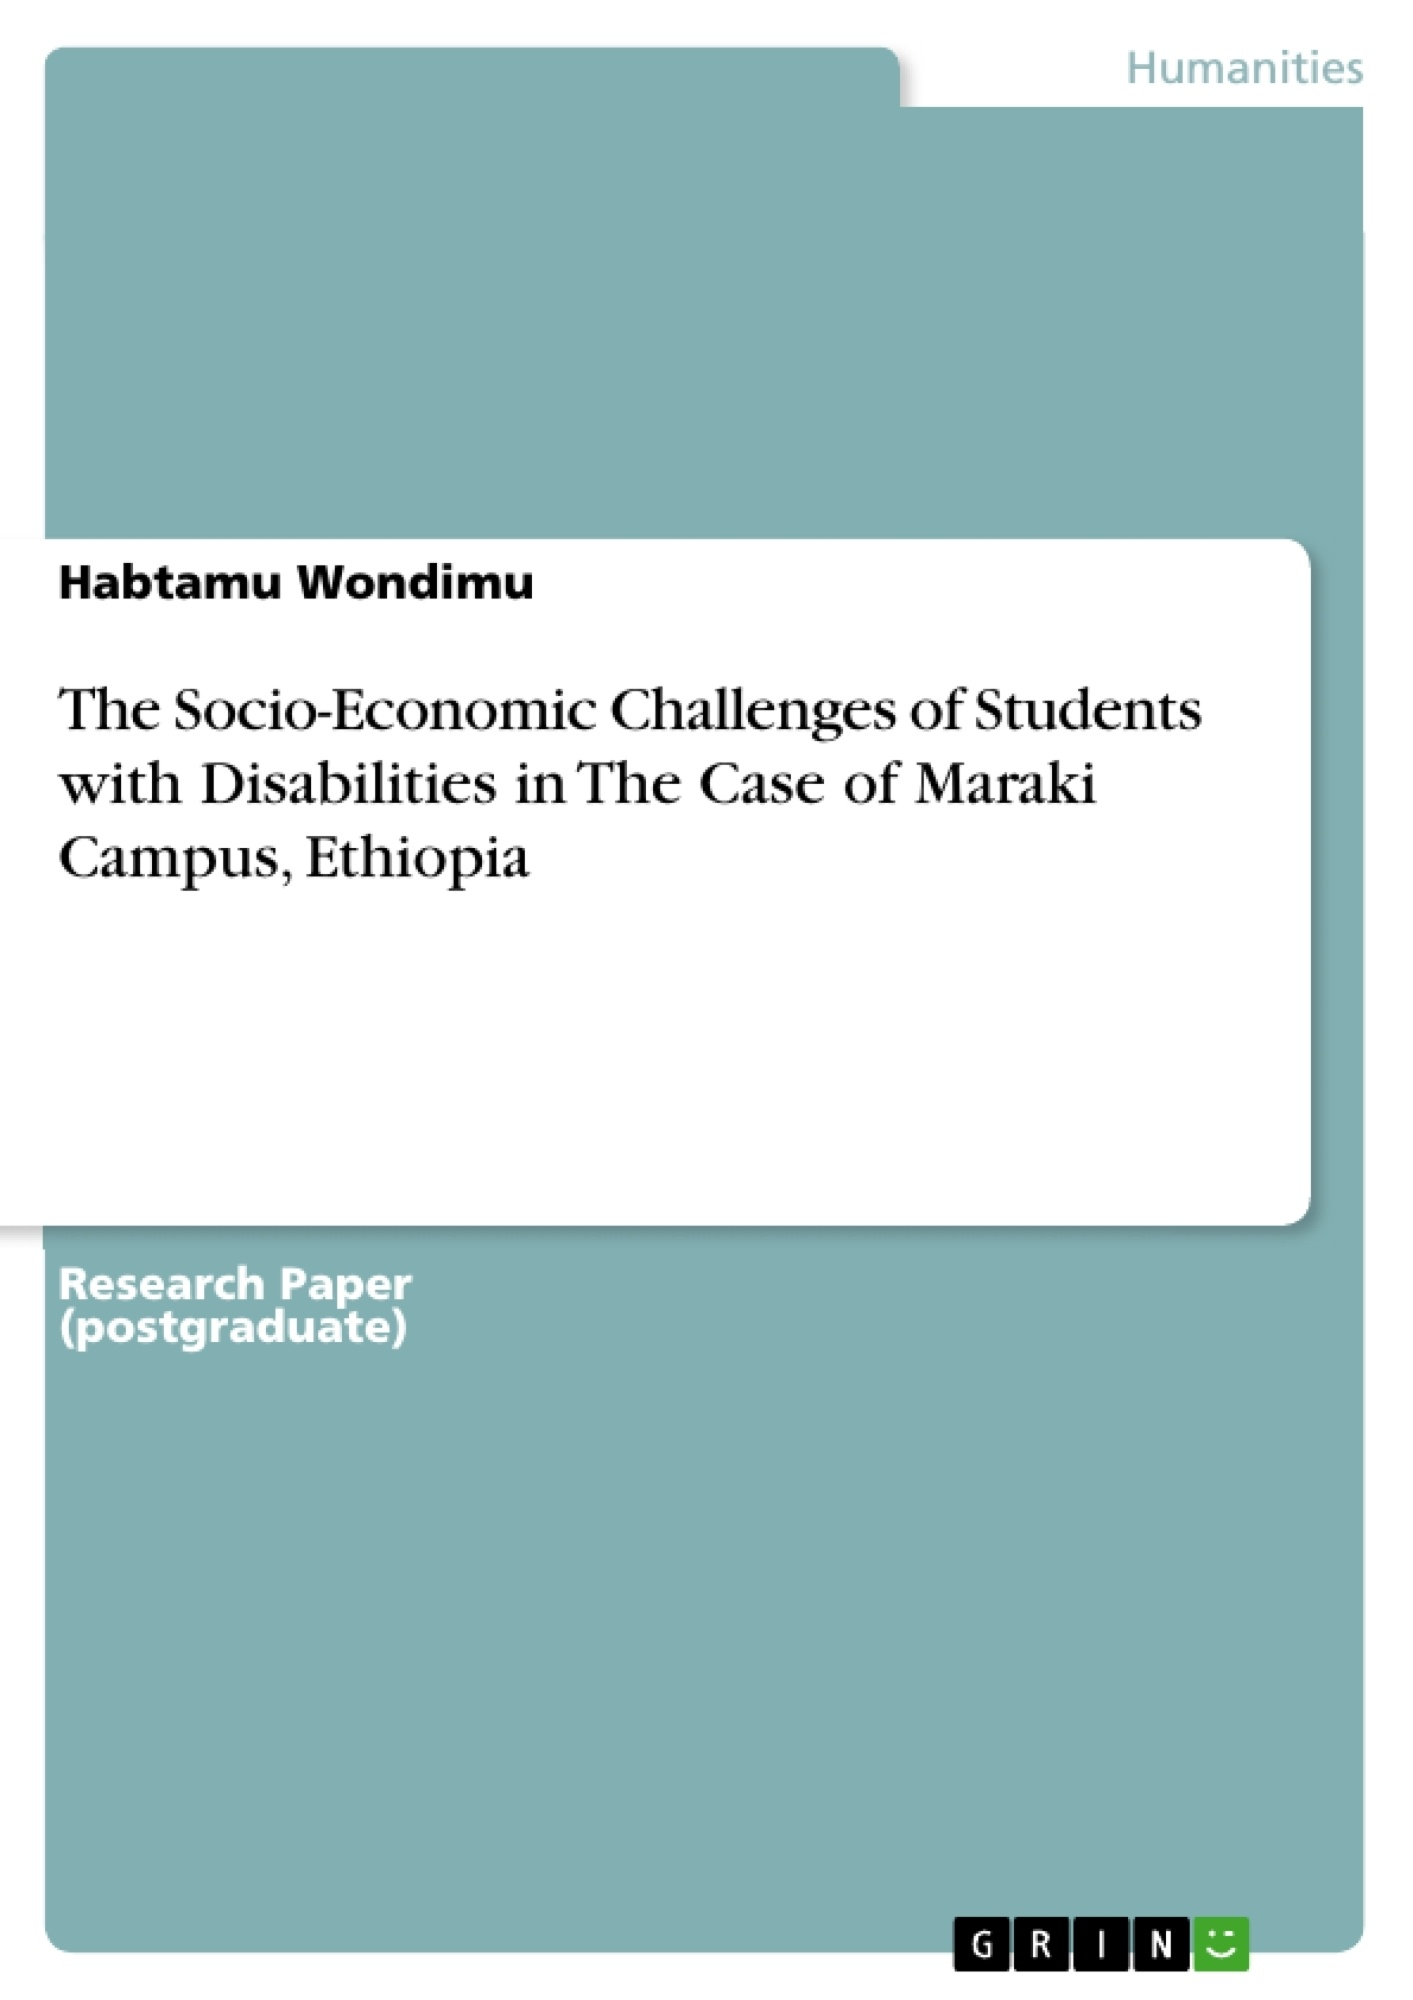 Title: The Socio-Economic Challenges of Students with Disabilities in The Case of Maraki Campus, Ethiopia